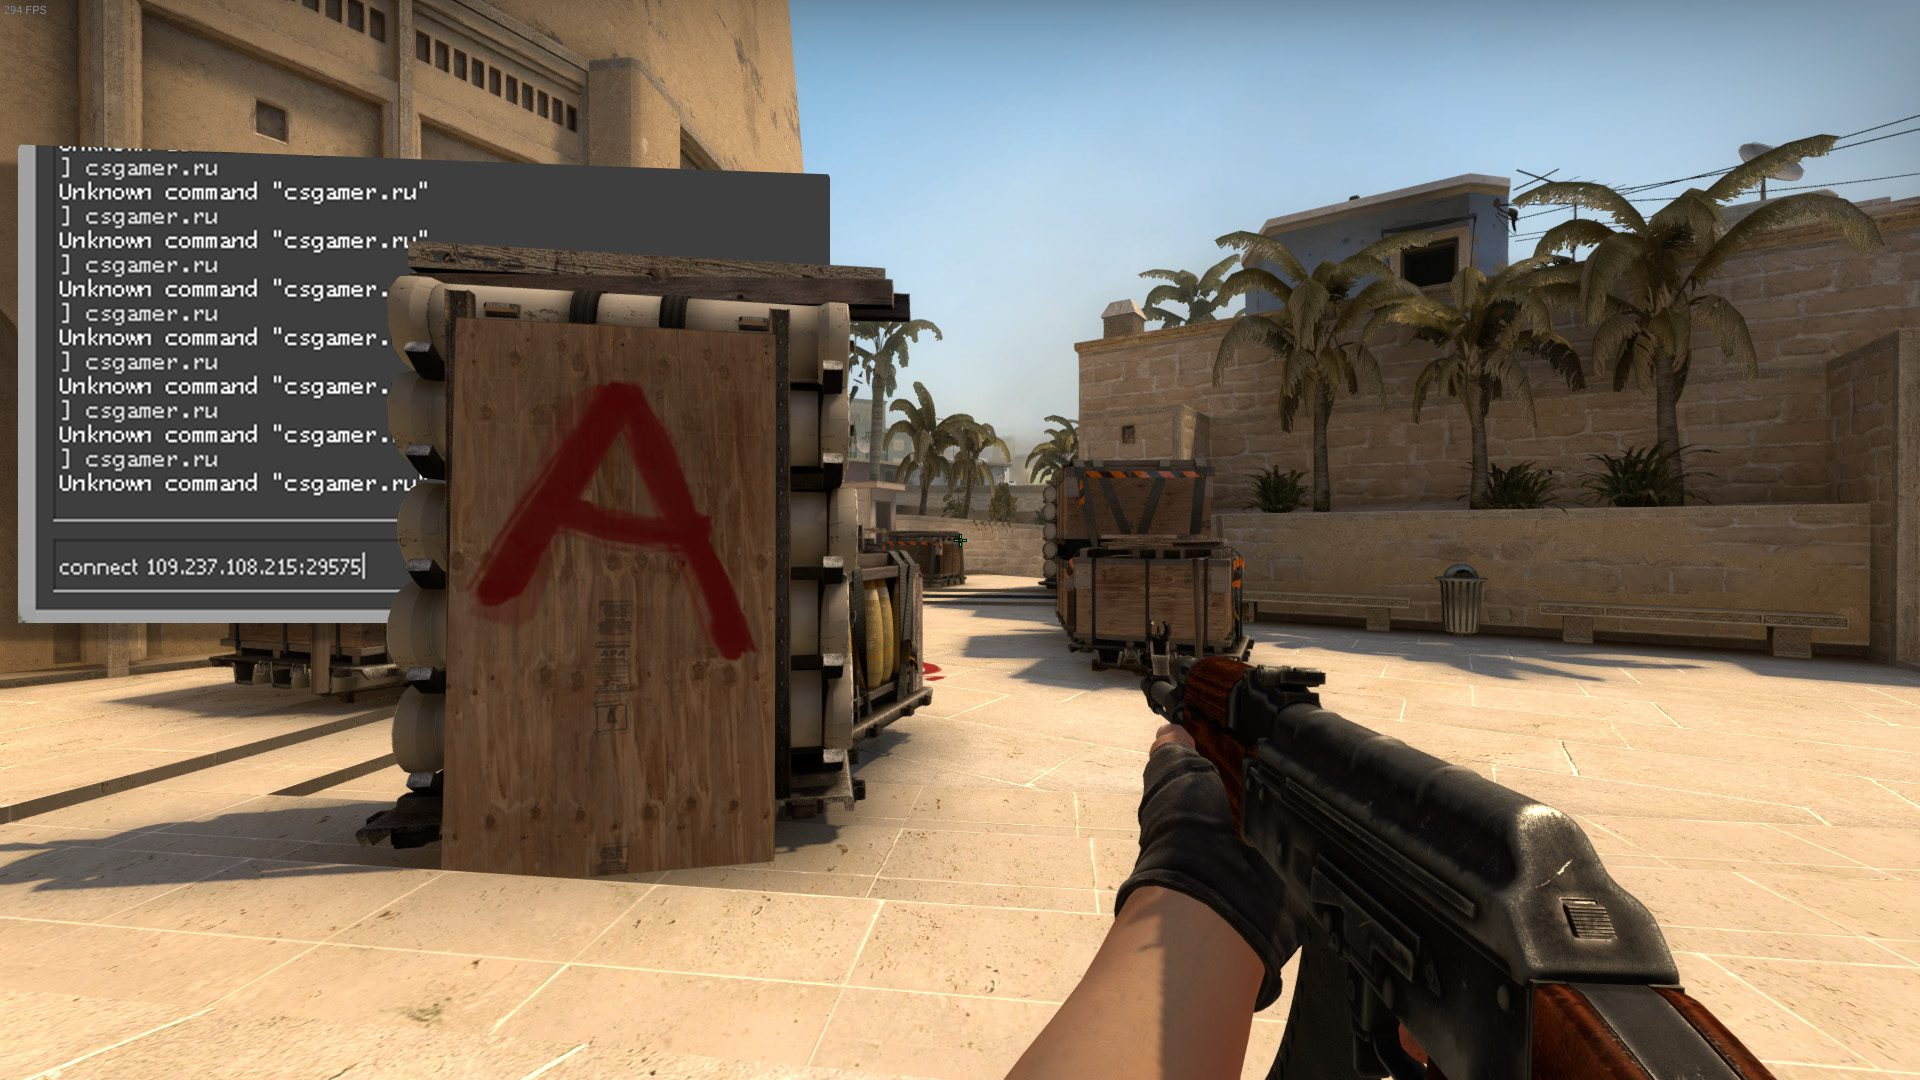 How to log into a server in CS: GO - Find a server by IP